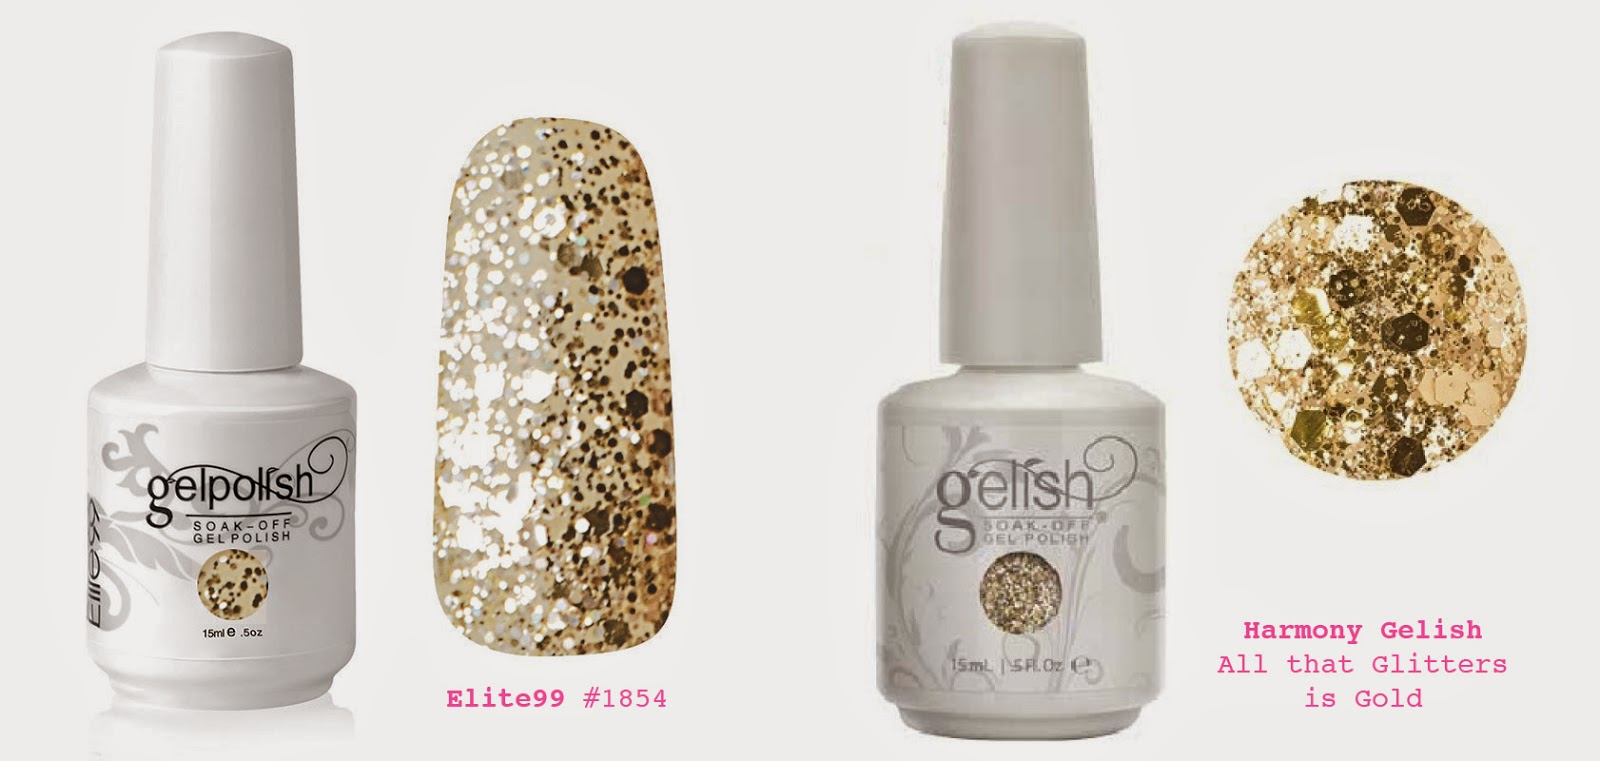 Gelish all that glitters is gold vs compared to elite99